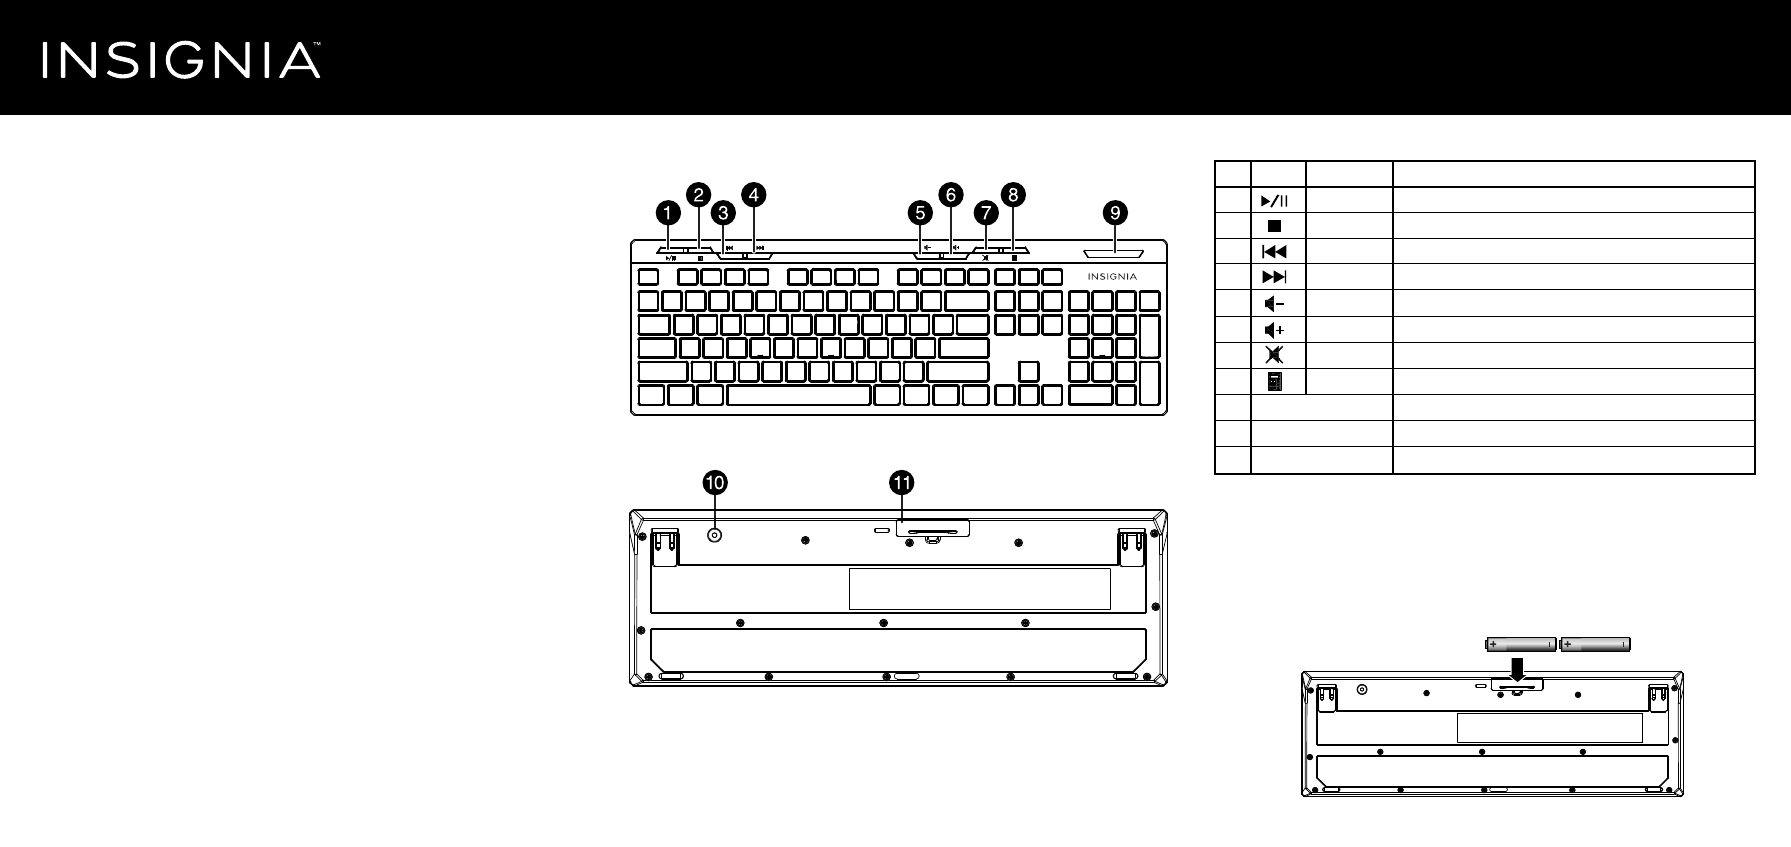 Insignia Computer Keyboard NS-PNK5011 User Guide